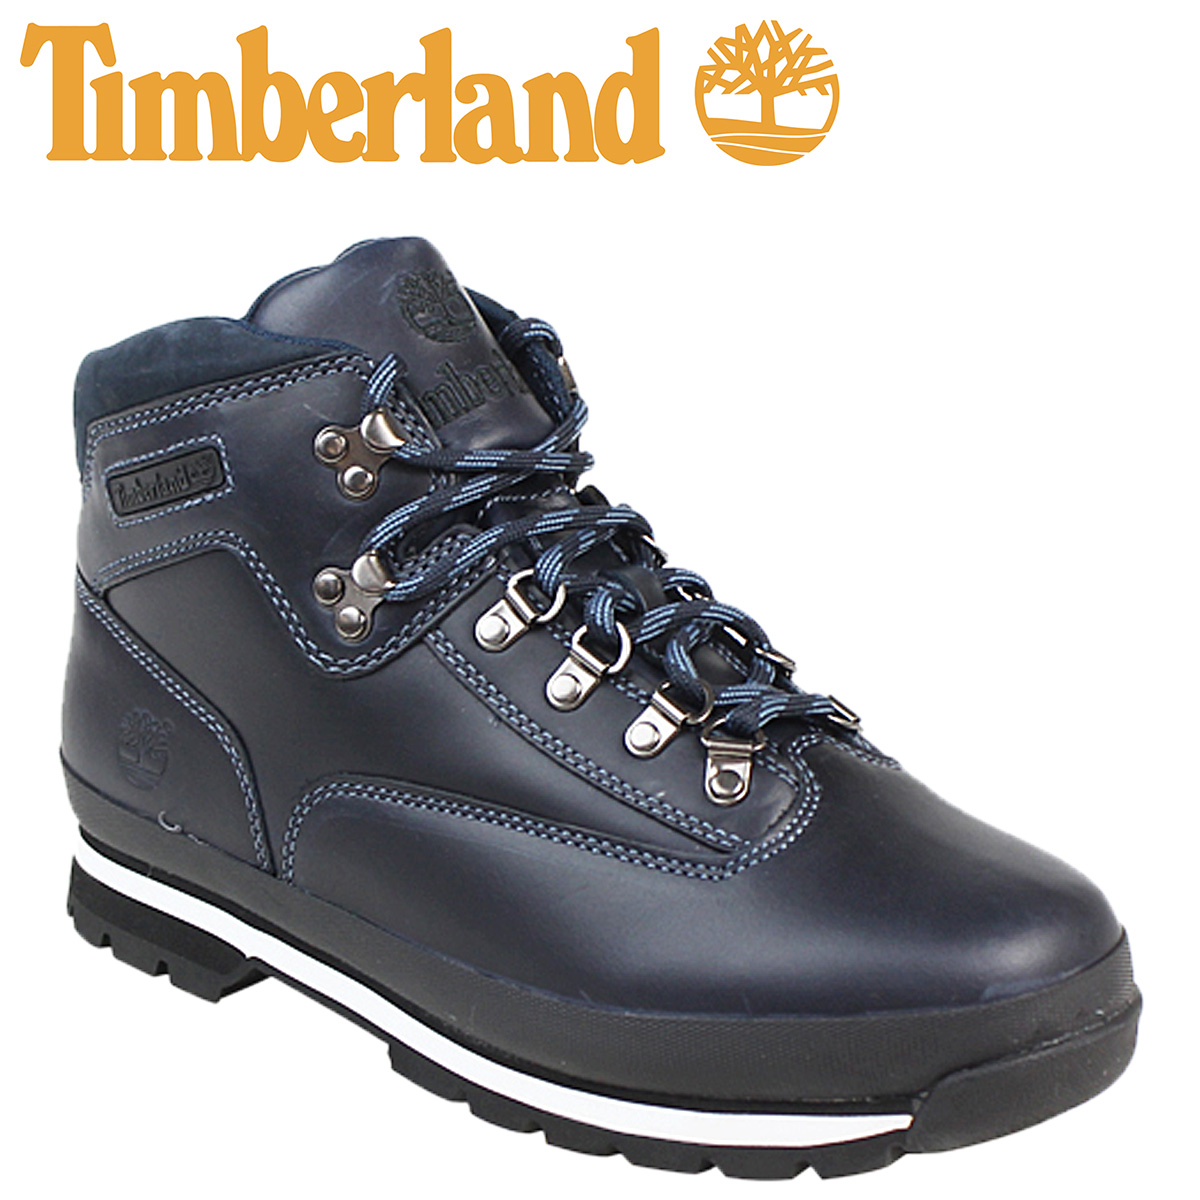 1fc03e0af51980 Timberland Timberland euro hiker boots EUROHIKER LTR NAVY SM leather men's  6601A Navy work boots ...